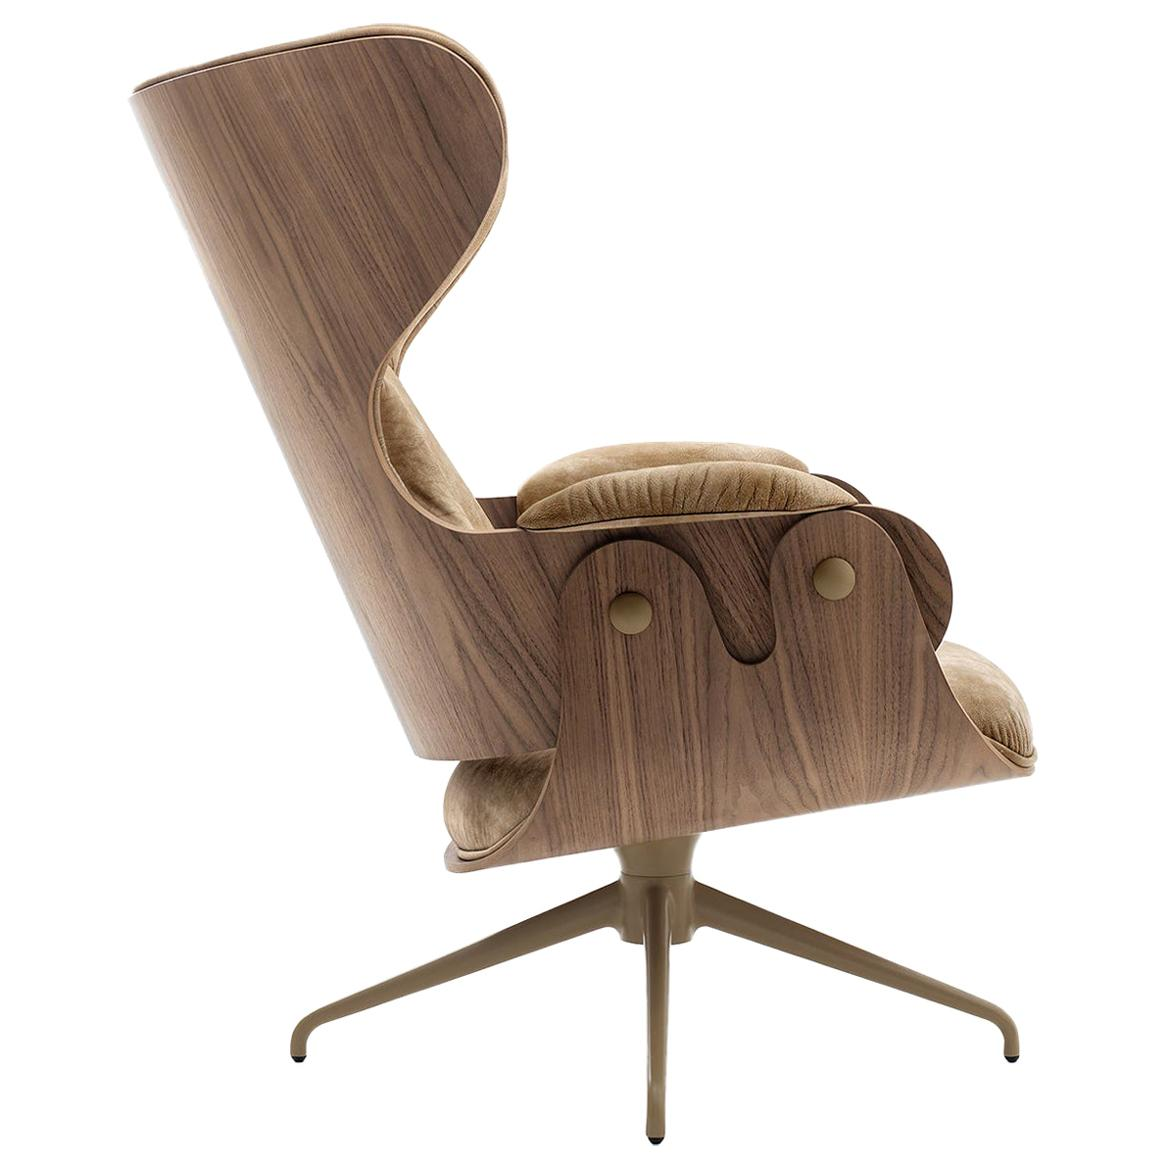 Jaime Hayon, Contemporary, Plywood Walnut Leather Upholstery Lounger Armchair